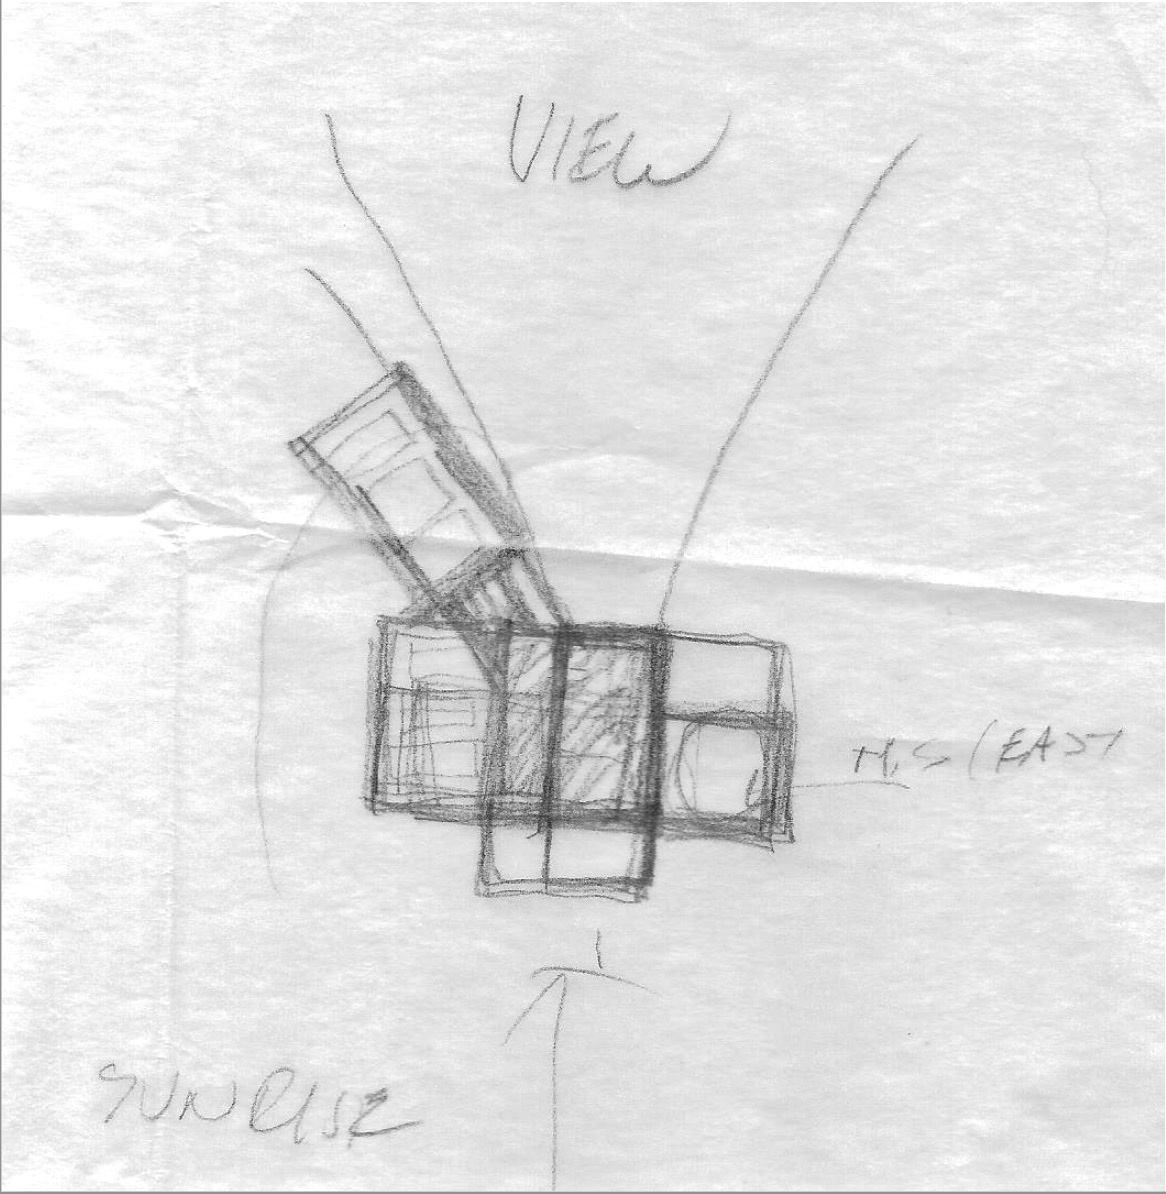 Ekocite Preliminary Architectural Sketch